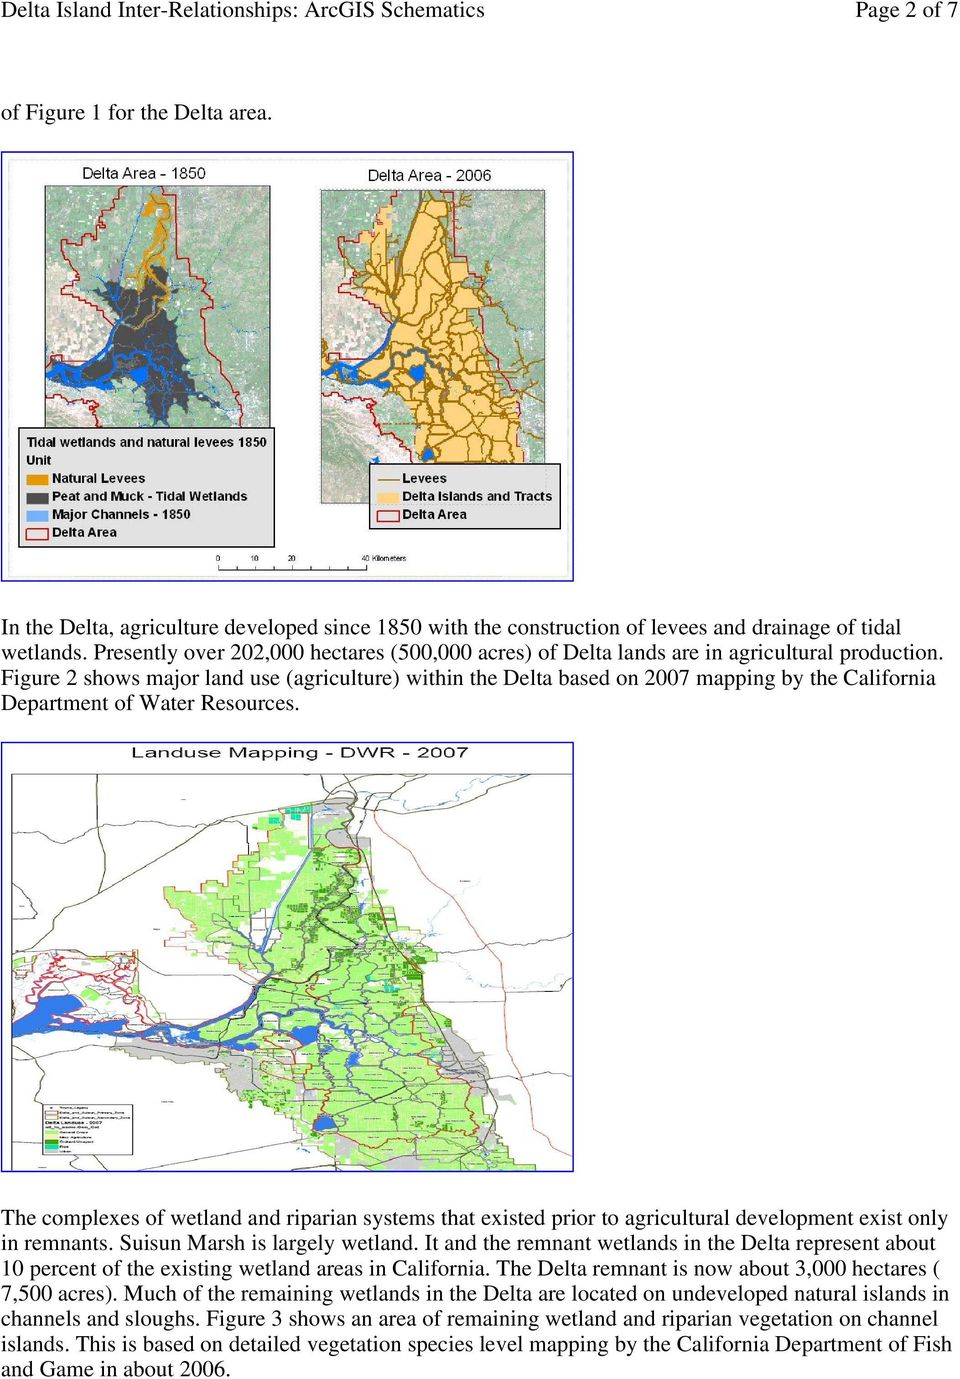 Figure 2 shows major land use (agriculture) within the Delta based on 2007 mapping by the California Department of Water Resources.